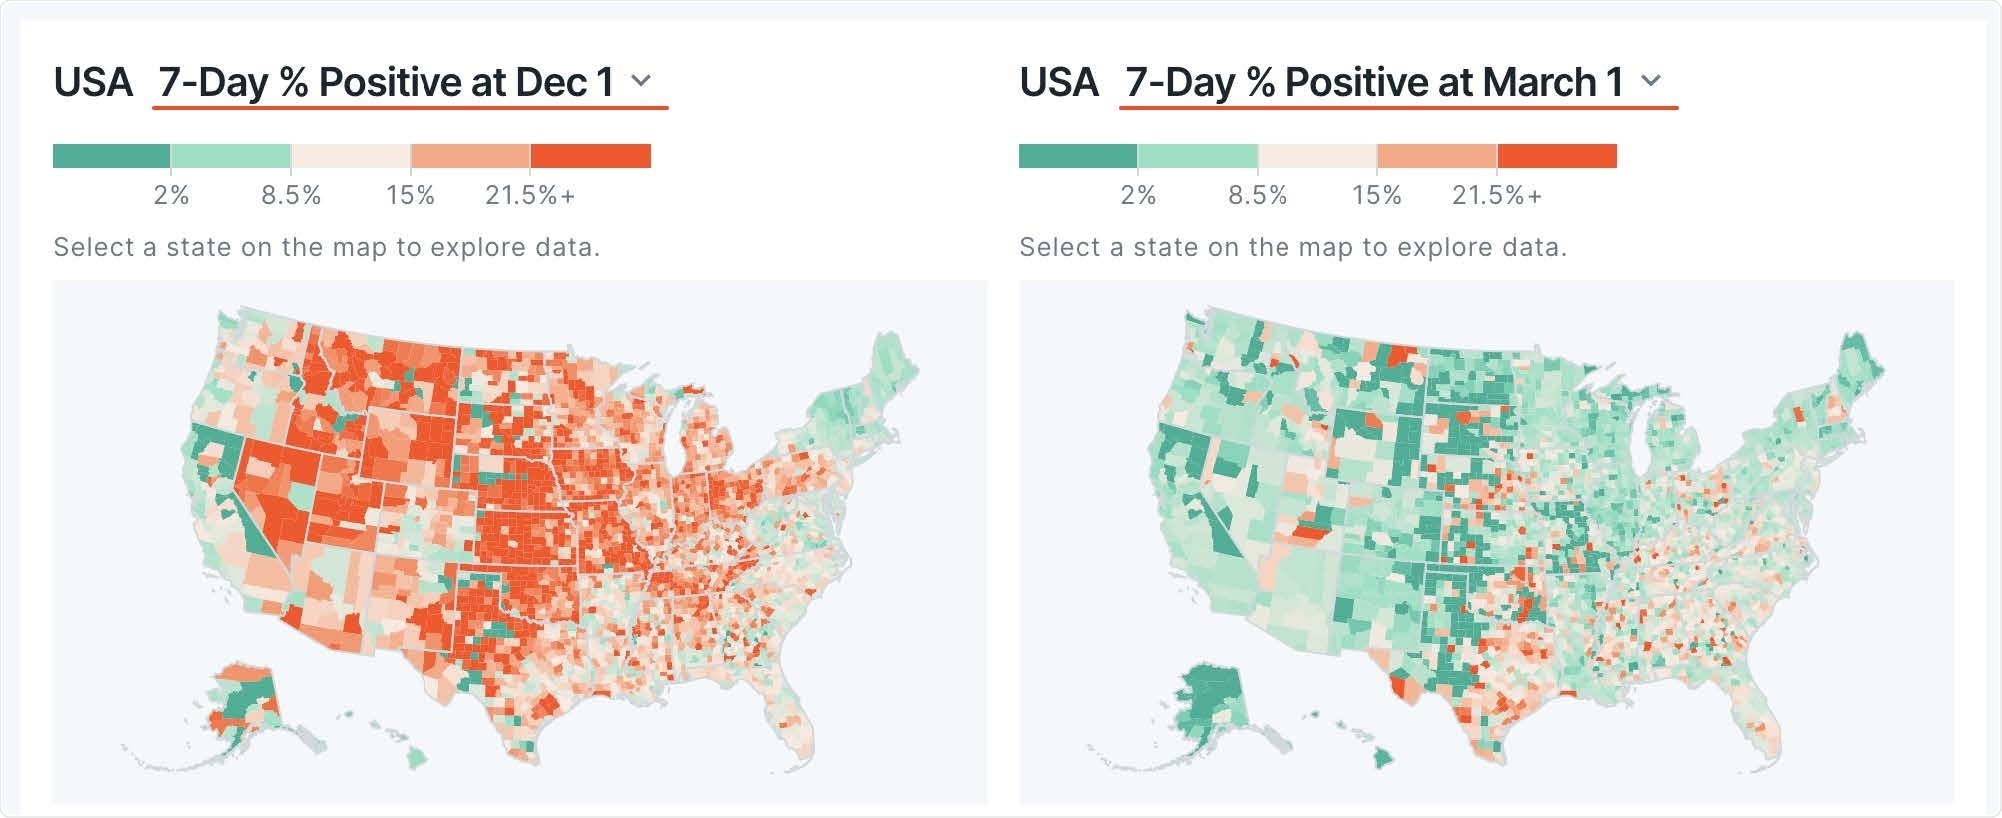 Relationship between mass vaccination and COVID-19 incidence. (A) US map of counties showing 7-day SARS-CoV-2 PCR positivity rates (PPR) for December 1 2020 prior to onset of FDA-authorized COVID- 19 vaccine rollout (left panel), and 7-day PPR for March 1 2021 after Phase 1a of mRNA vaccination between December 2020 and February 2021. The colorbar varies from green (low PPR) to red (high PPR).